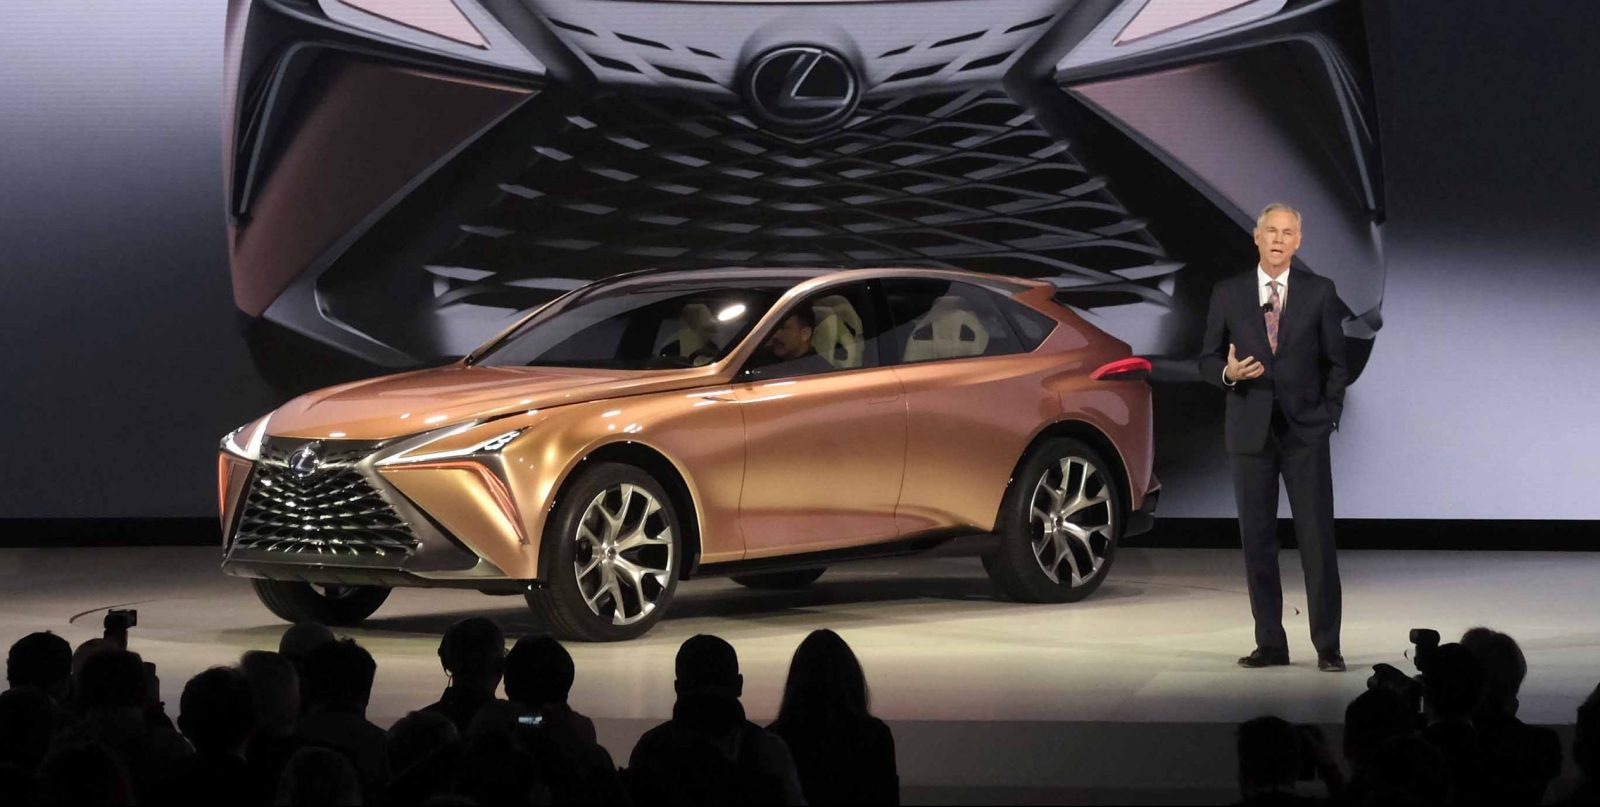 61 Concept of Lexus Electric Car 2020 Release with Lexus Electric Car 2020